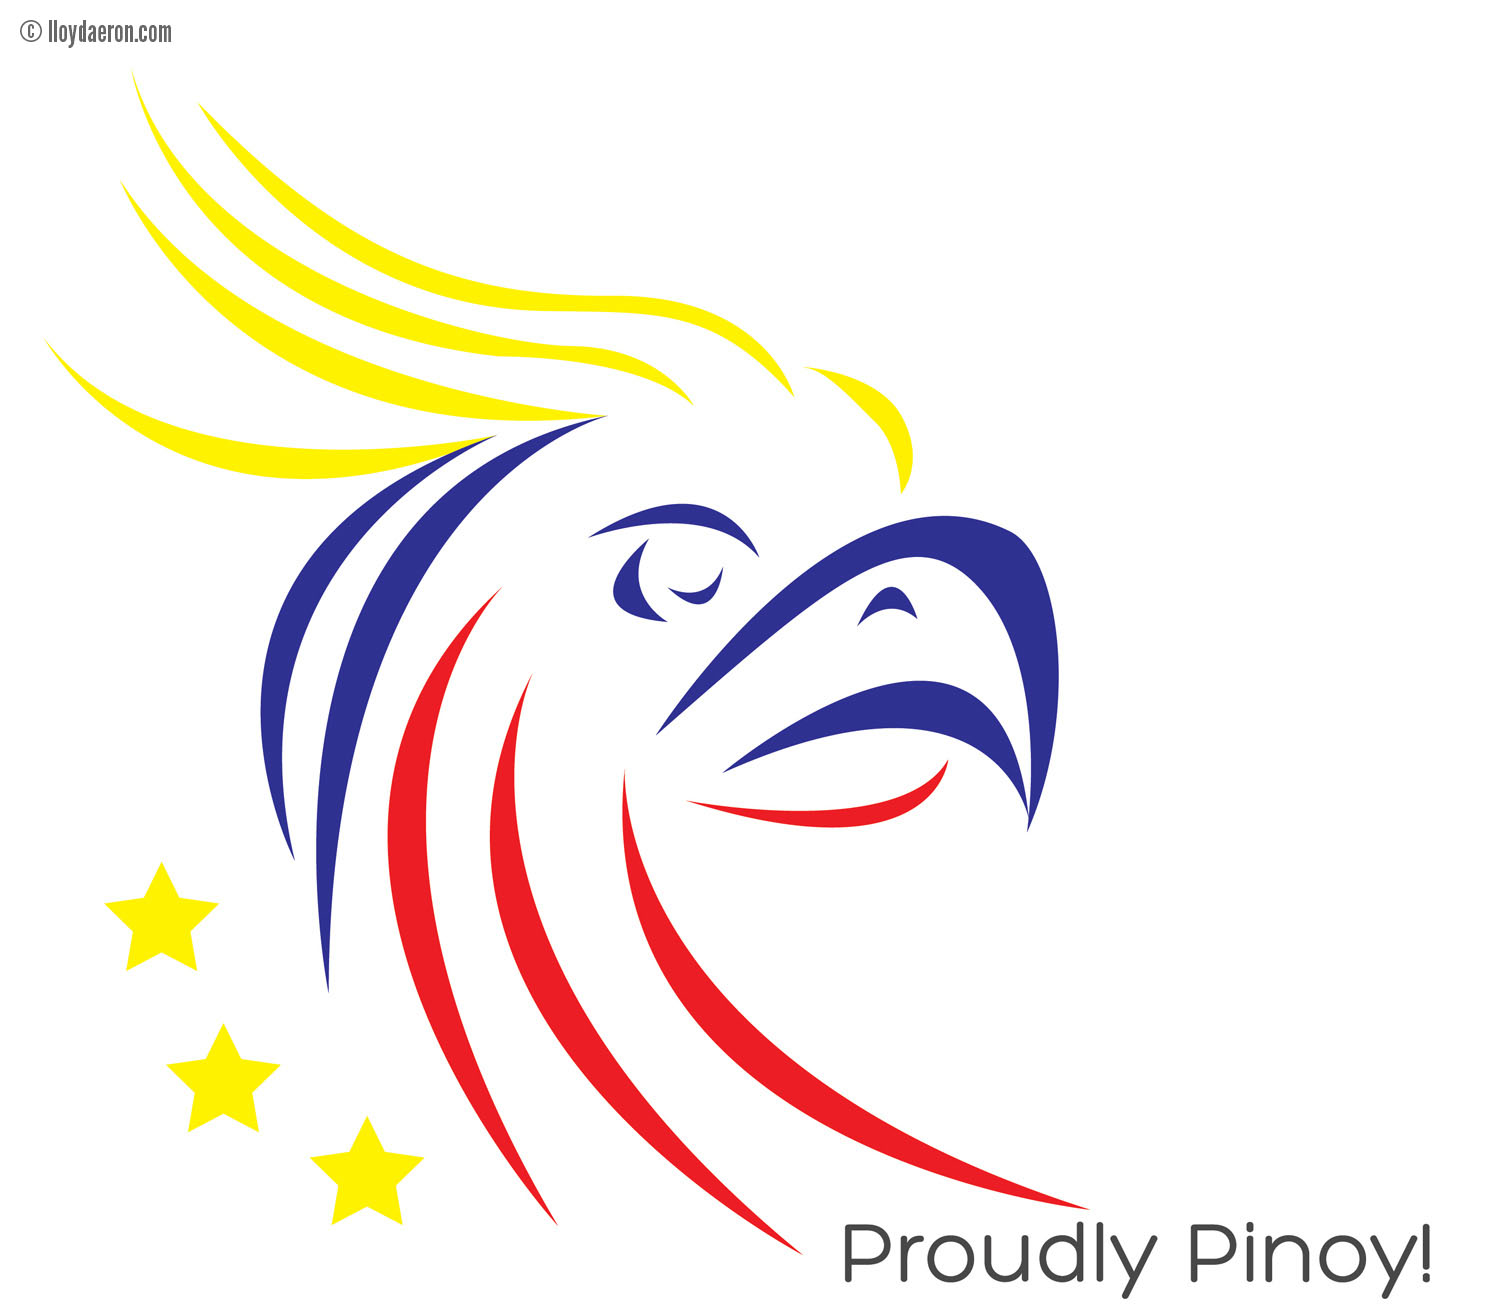 Philippines Logo in addition 19c0c6725e18d70b Kerala Home Design Kerala Model House Design moreover 5 Bedroom Bungalow House Plans Philippines 6 besides Sm Mall Of Asia The 3rd Largest Shopping Mall In The World as well 06 uPVC Electrical Wire Moulding Specifications. on philippines interior design